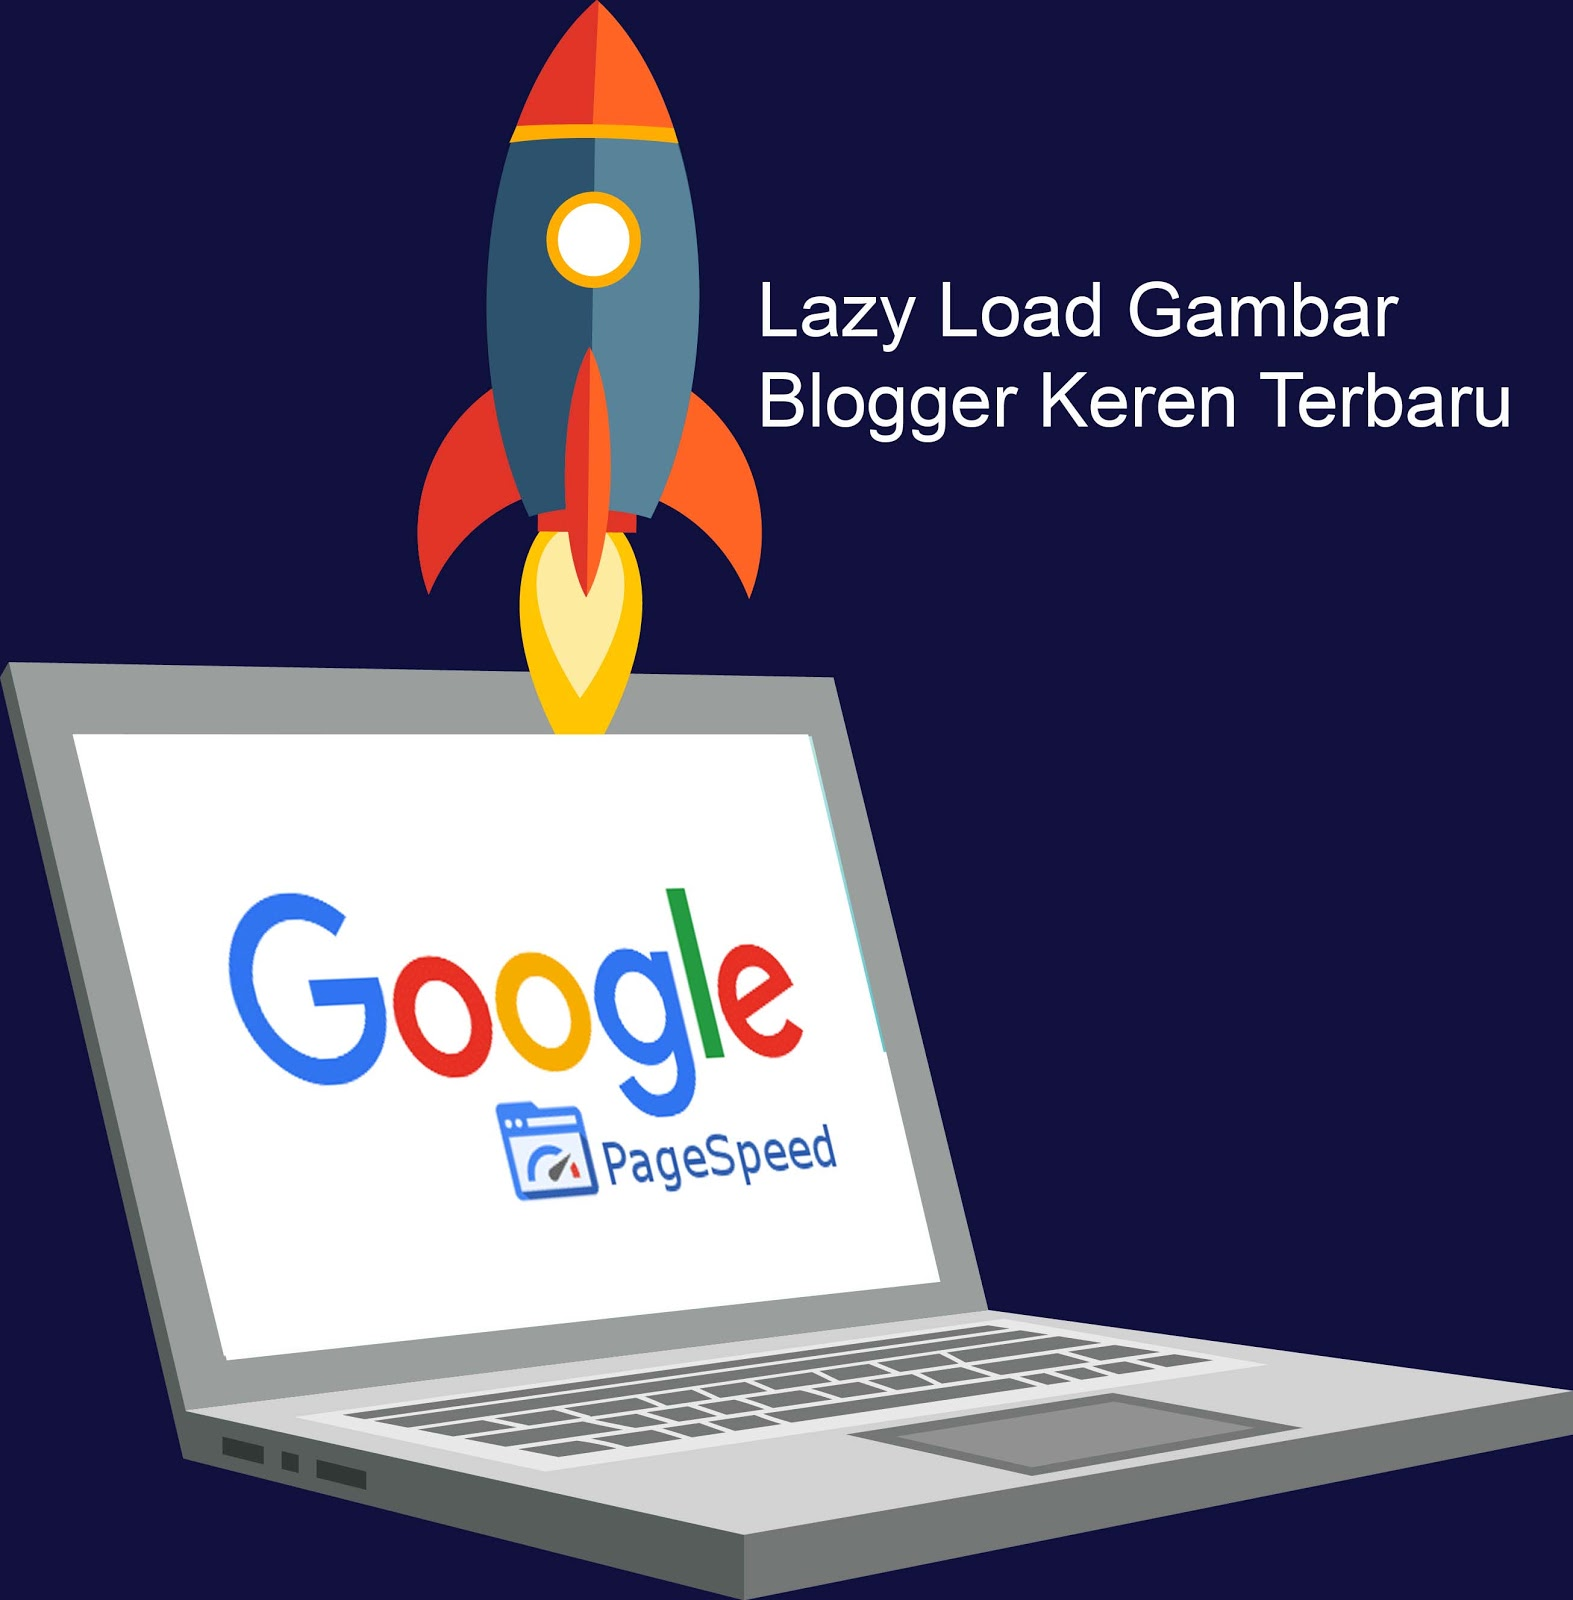 Lazy Load Gambar Blogger